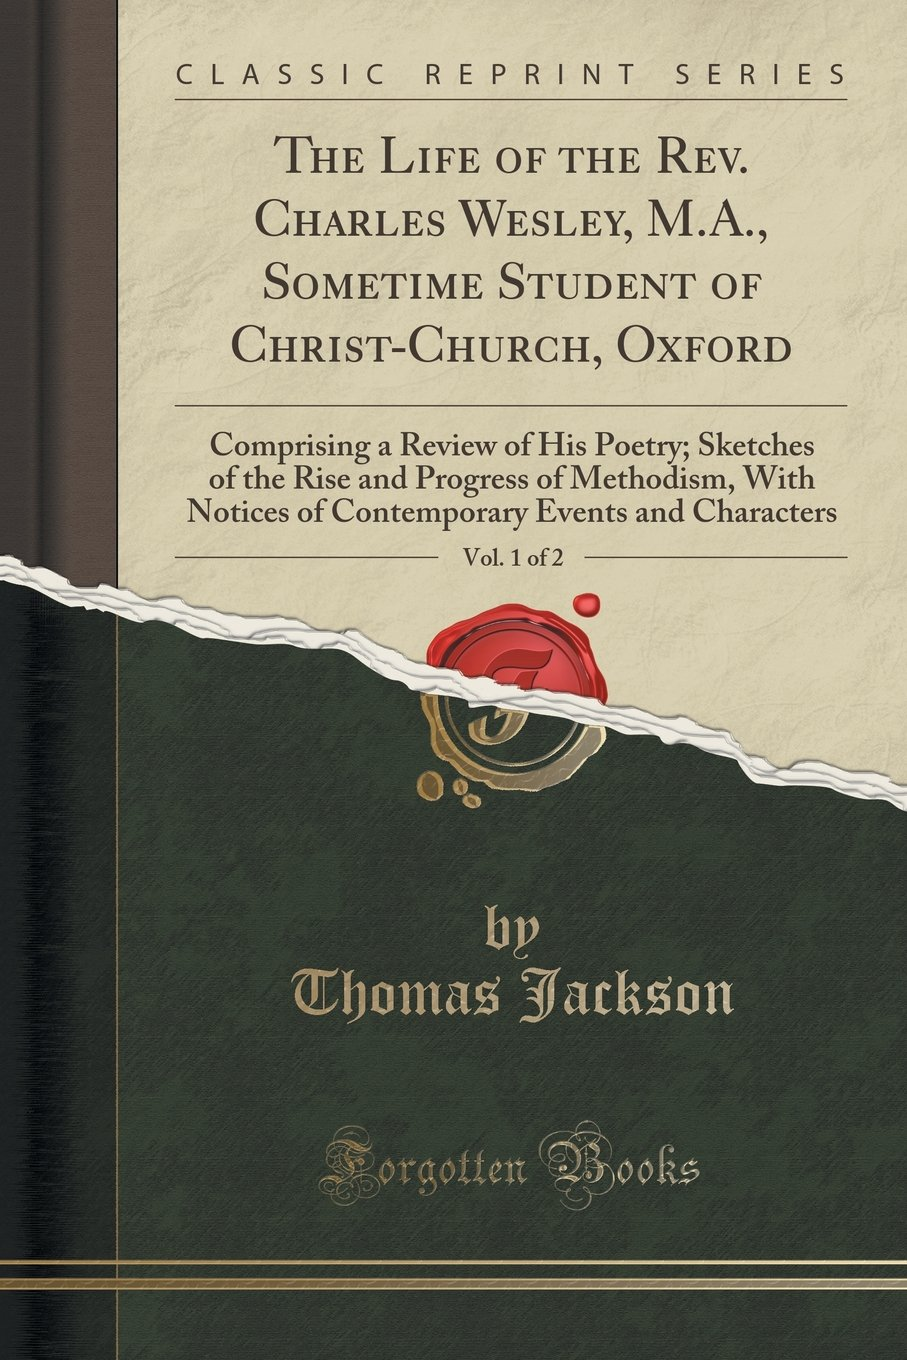 The Life of the Rev. Charles Wesley, M.A., Sometime Student of Christ-Church, Oxford, Vol. 1 of 2: Comprising a Review of His Poetry; Sketches of the ... Events and Characters (Classic Reprint) pdf epub